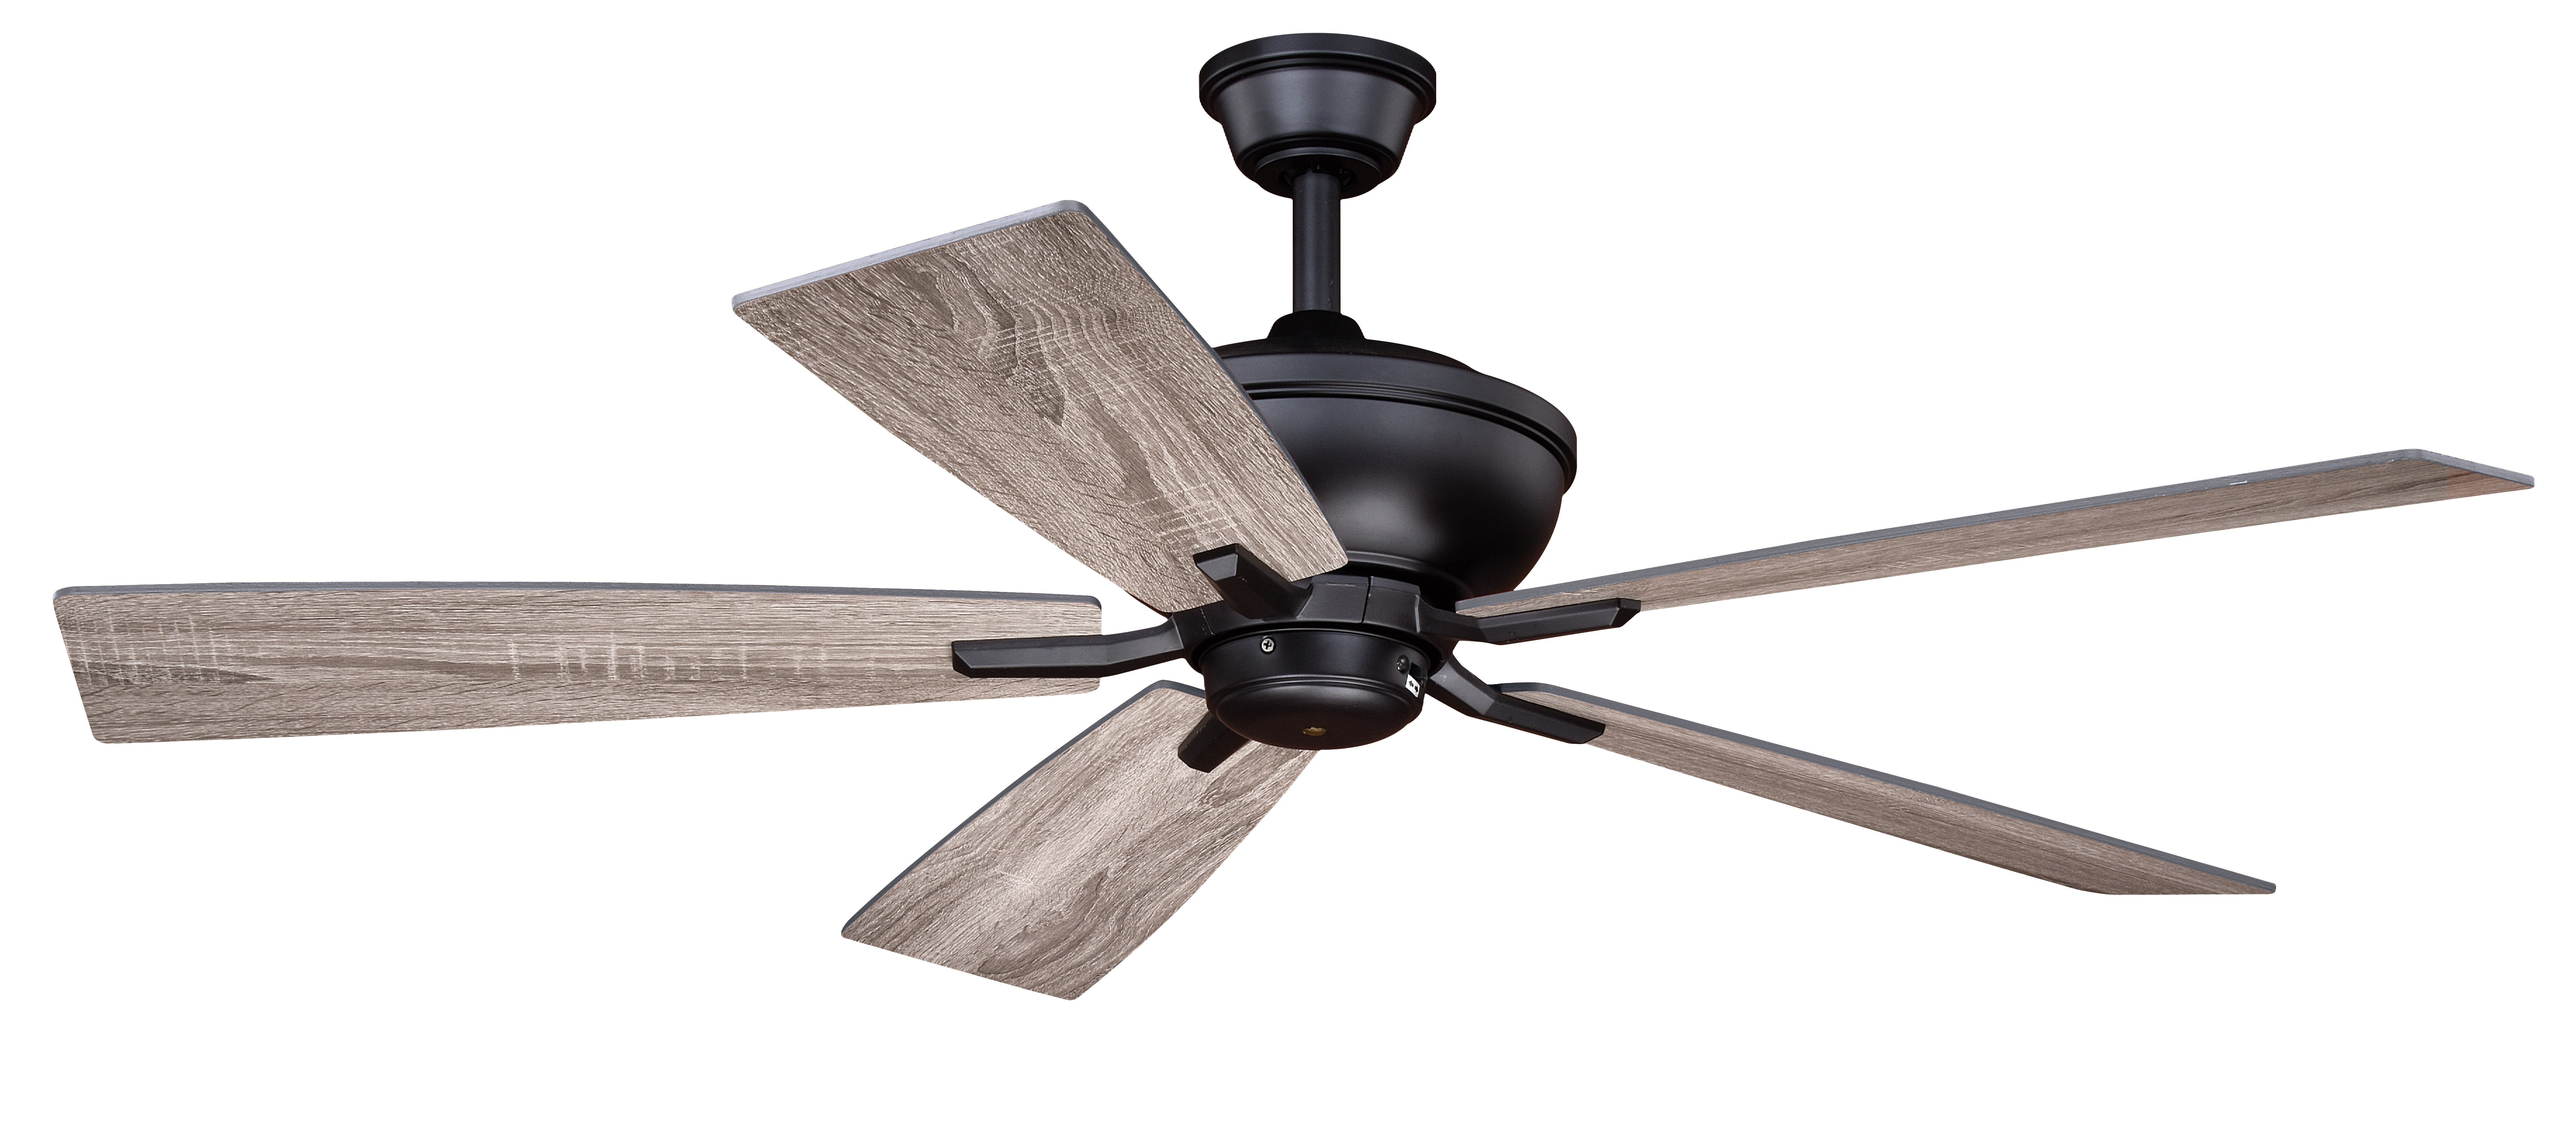 "Ratcliffe 5 Blade Led Ceiling Fans Pertaining To Most Recent 52"" Hirsch 5 Blade Ceiling Fan With Remote, Light Kit Included (View 16 of 20)"